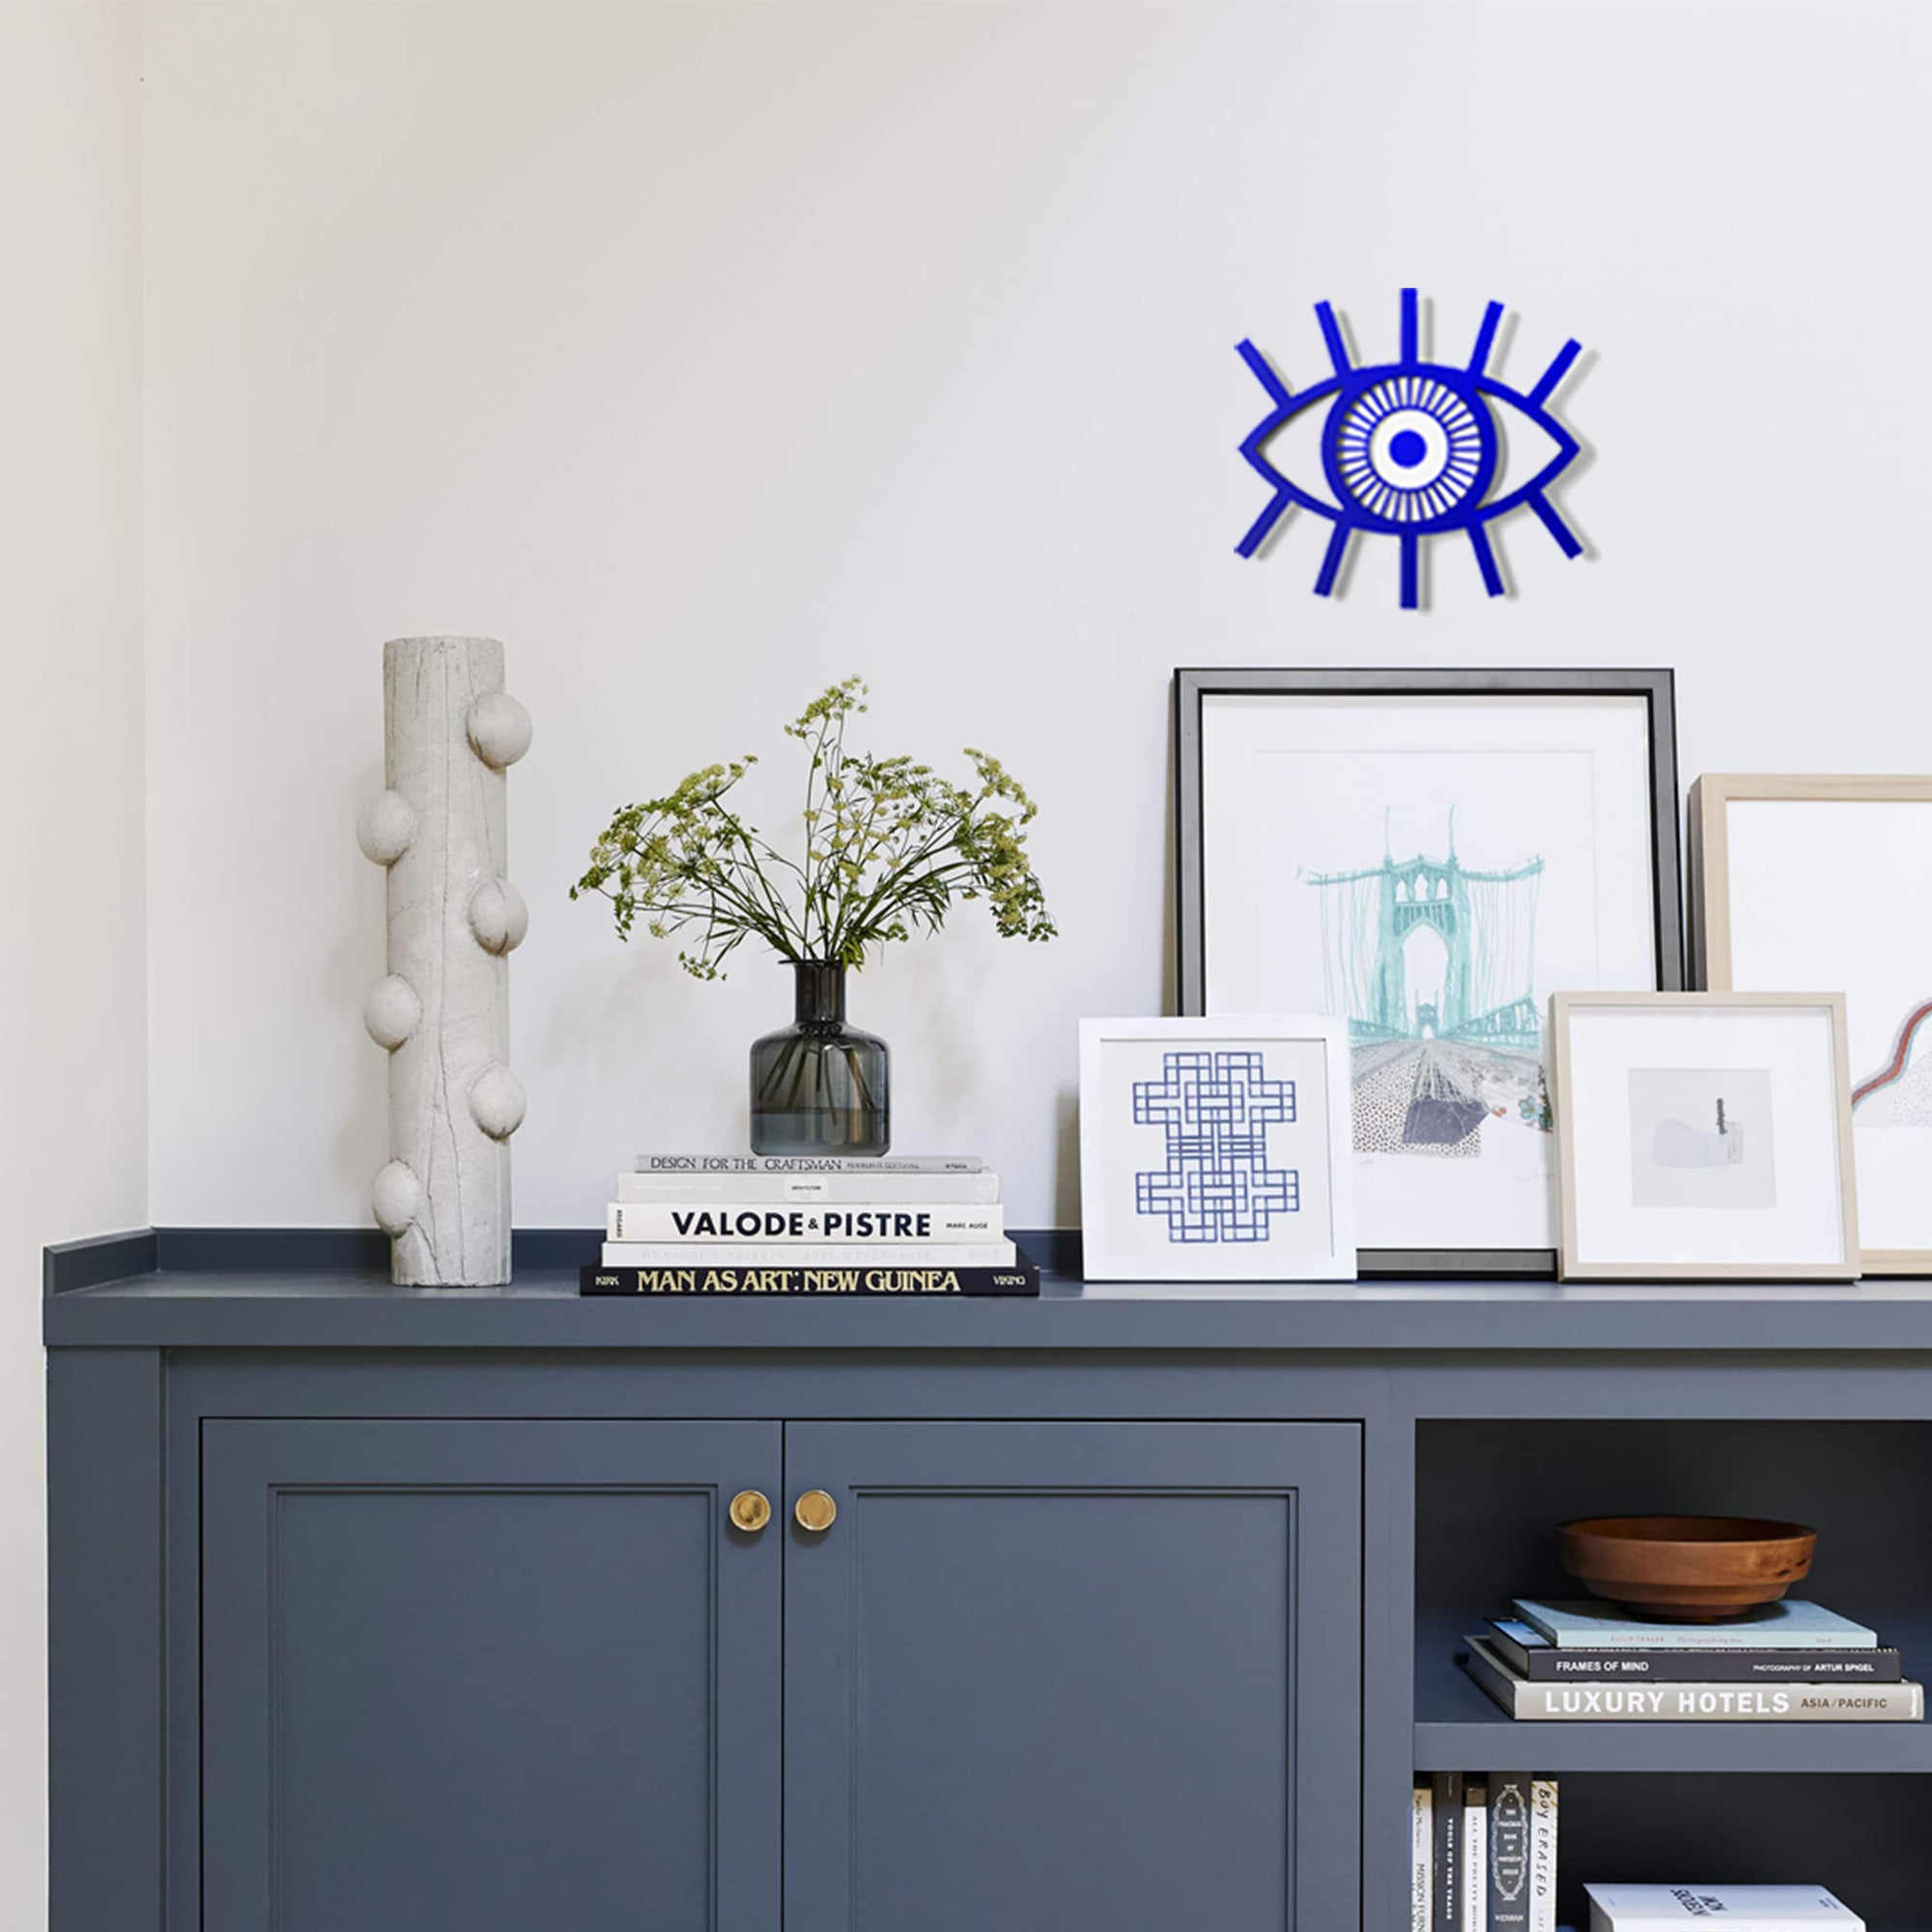 Evil Eye Wall Decor: For people who love the inclusiveness of Culture